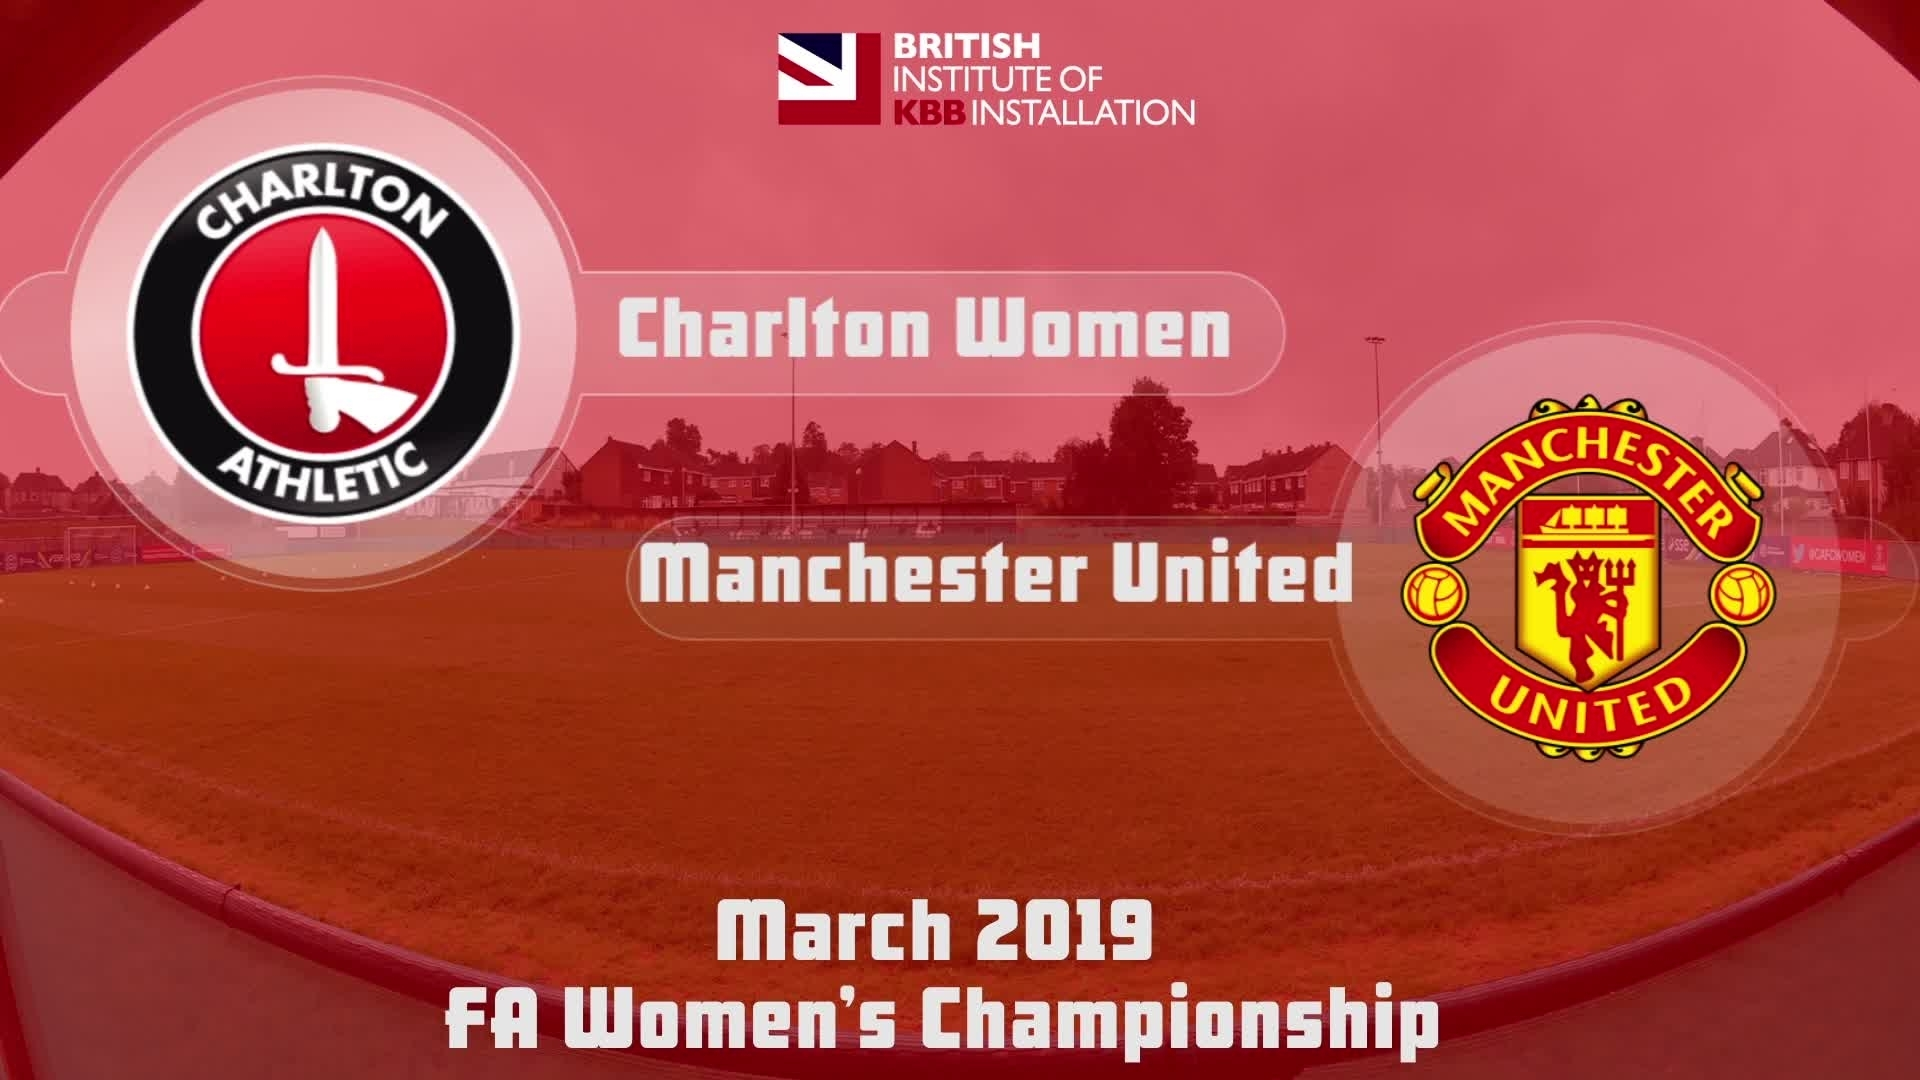 WOMEN'S HIGHLIGHTS | Charlton Women 1 Manchester United 2 (March 2019)